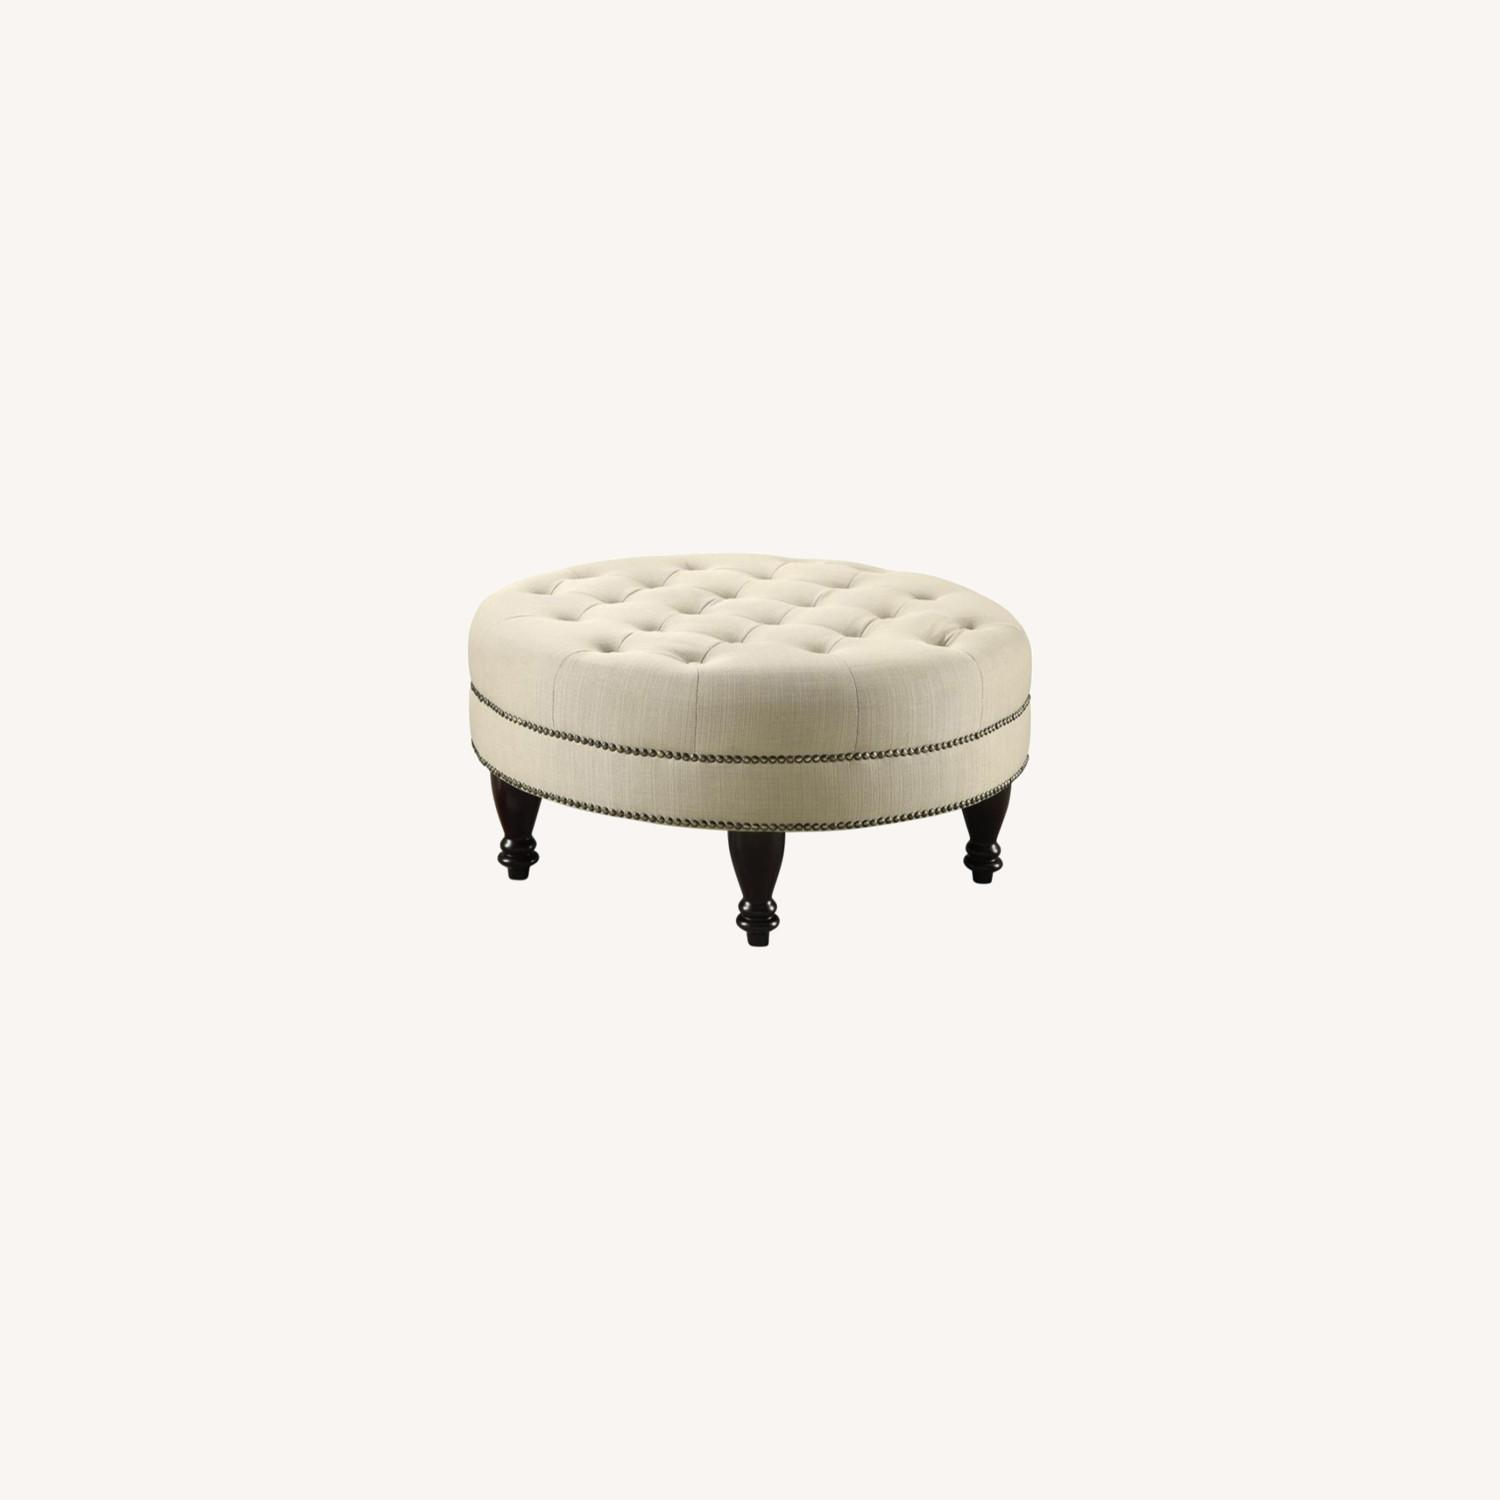 Round Ottoman In Linen-Like Oatmeal Fabric - image-3